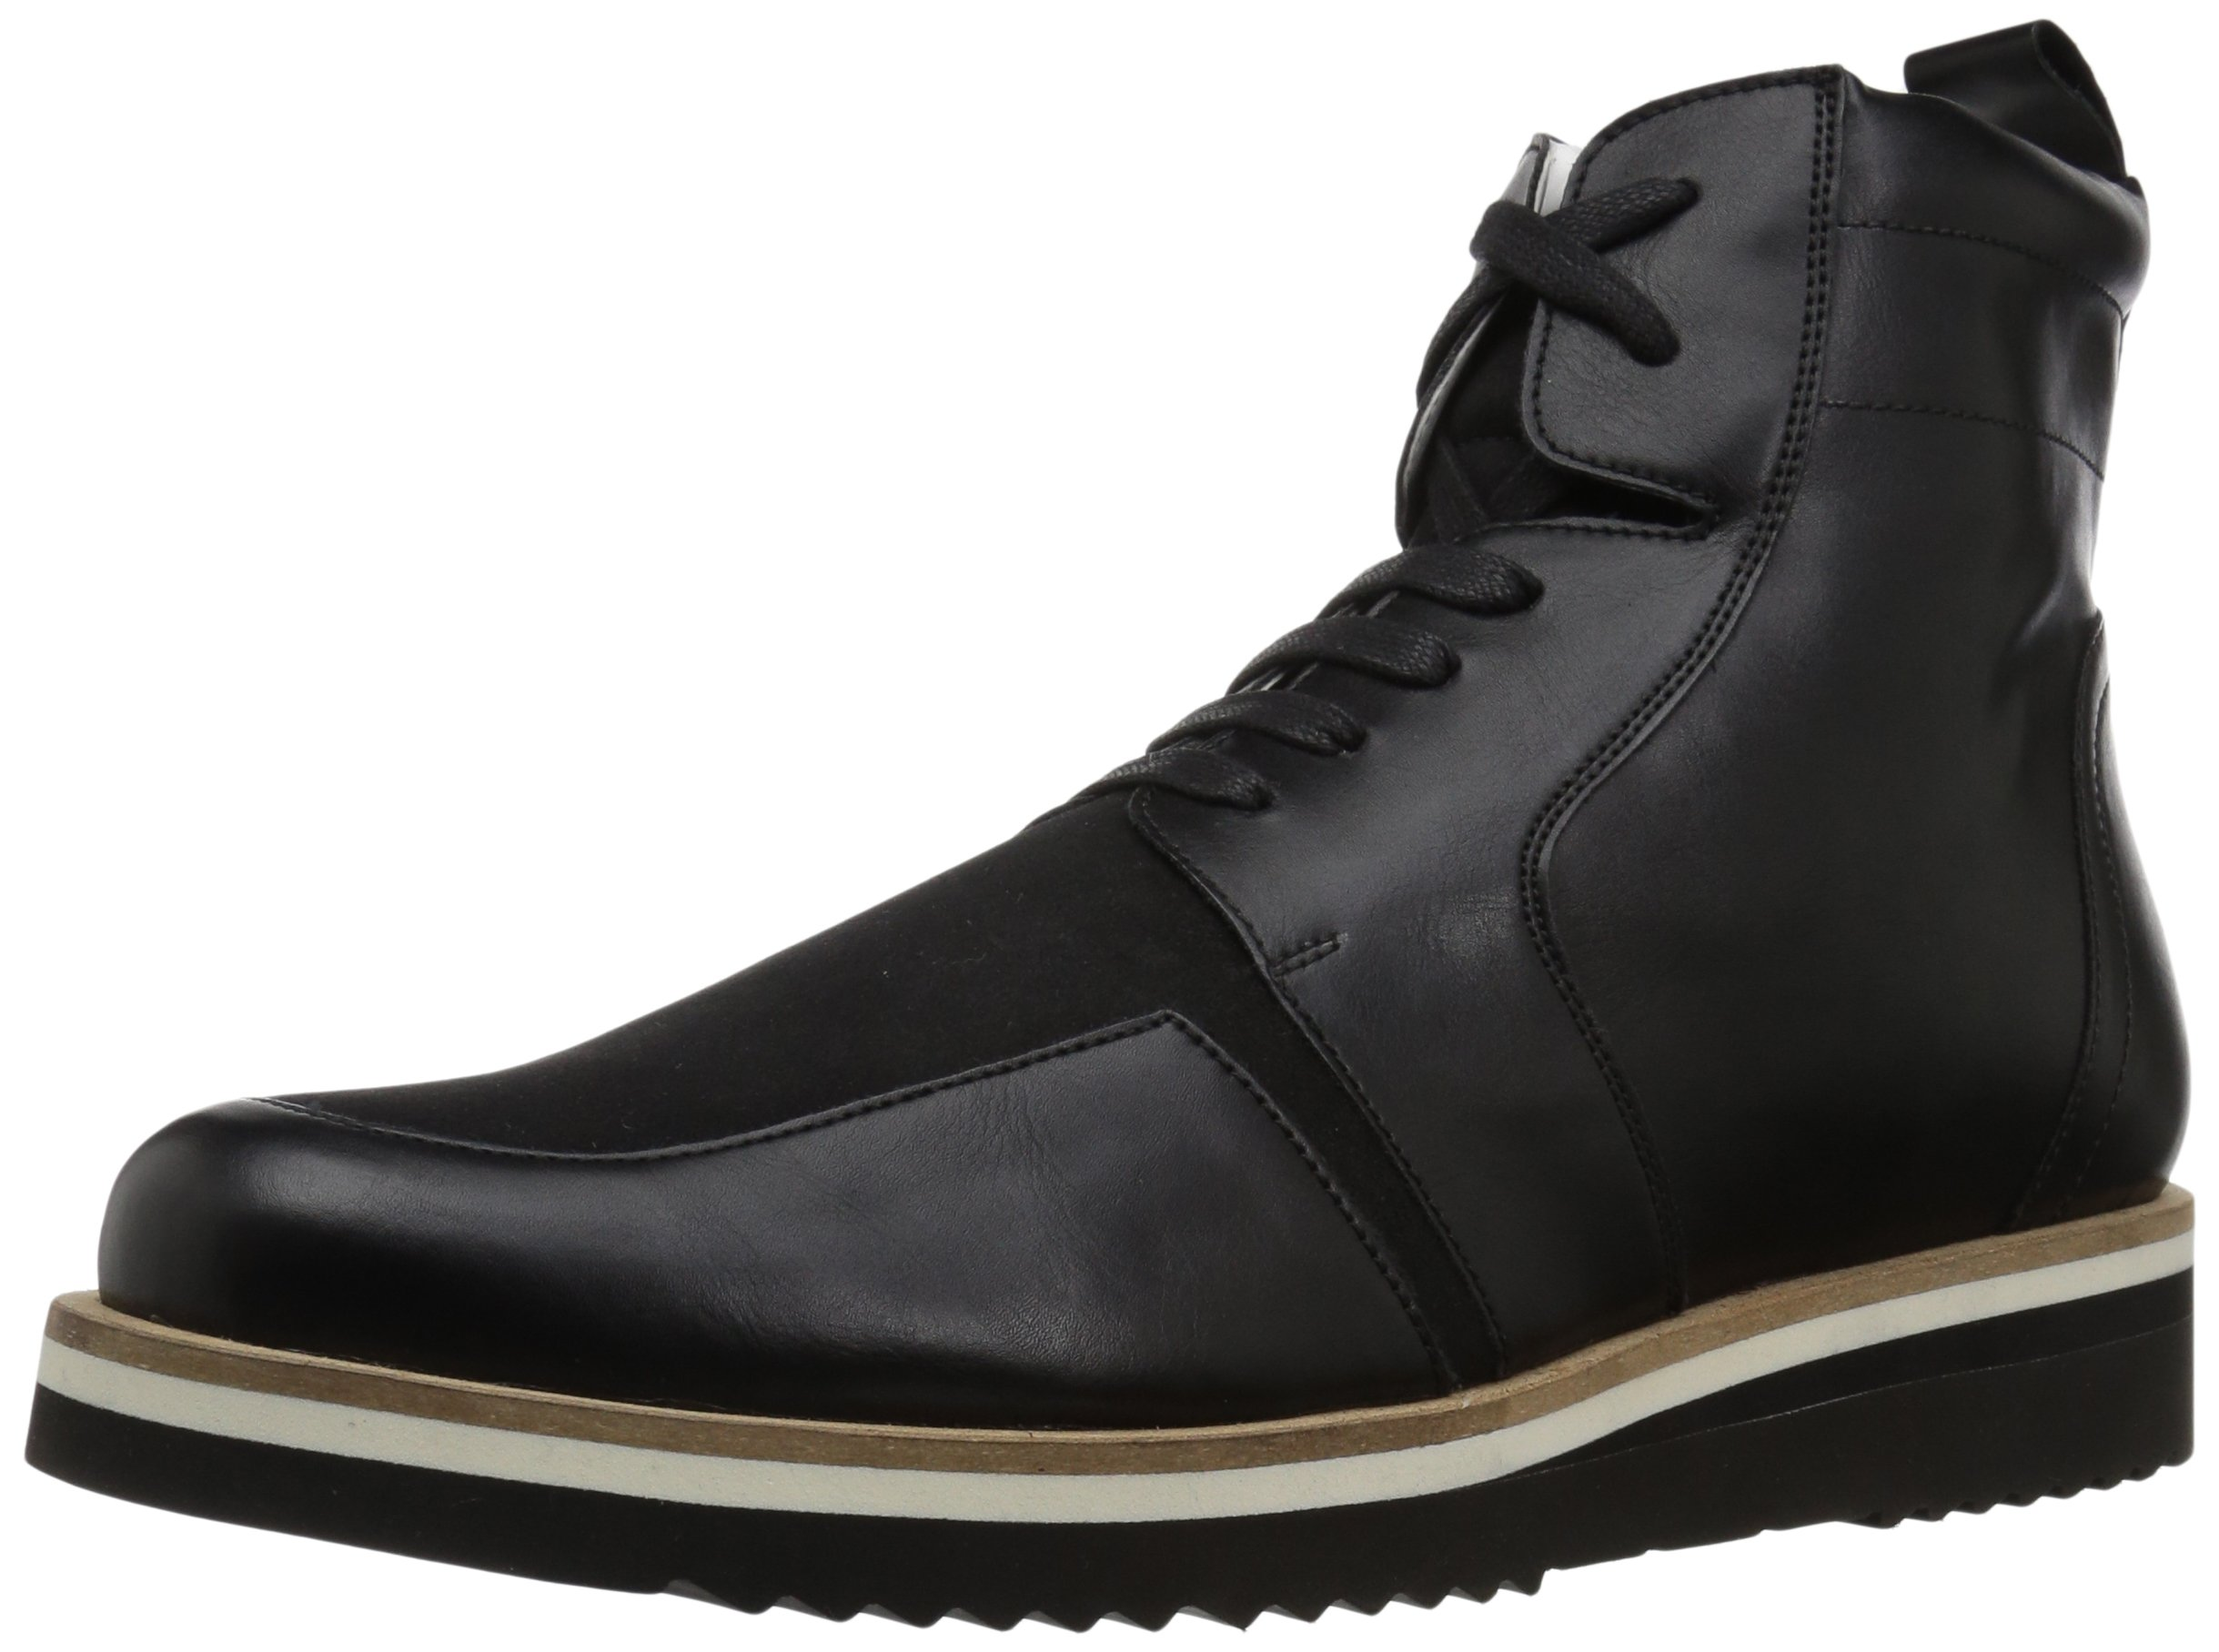 A|X Armani Exchange Men's Lace up Side Zip with Sole Detail Military and Tactical Boot, Nero, 12 M US